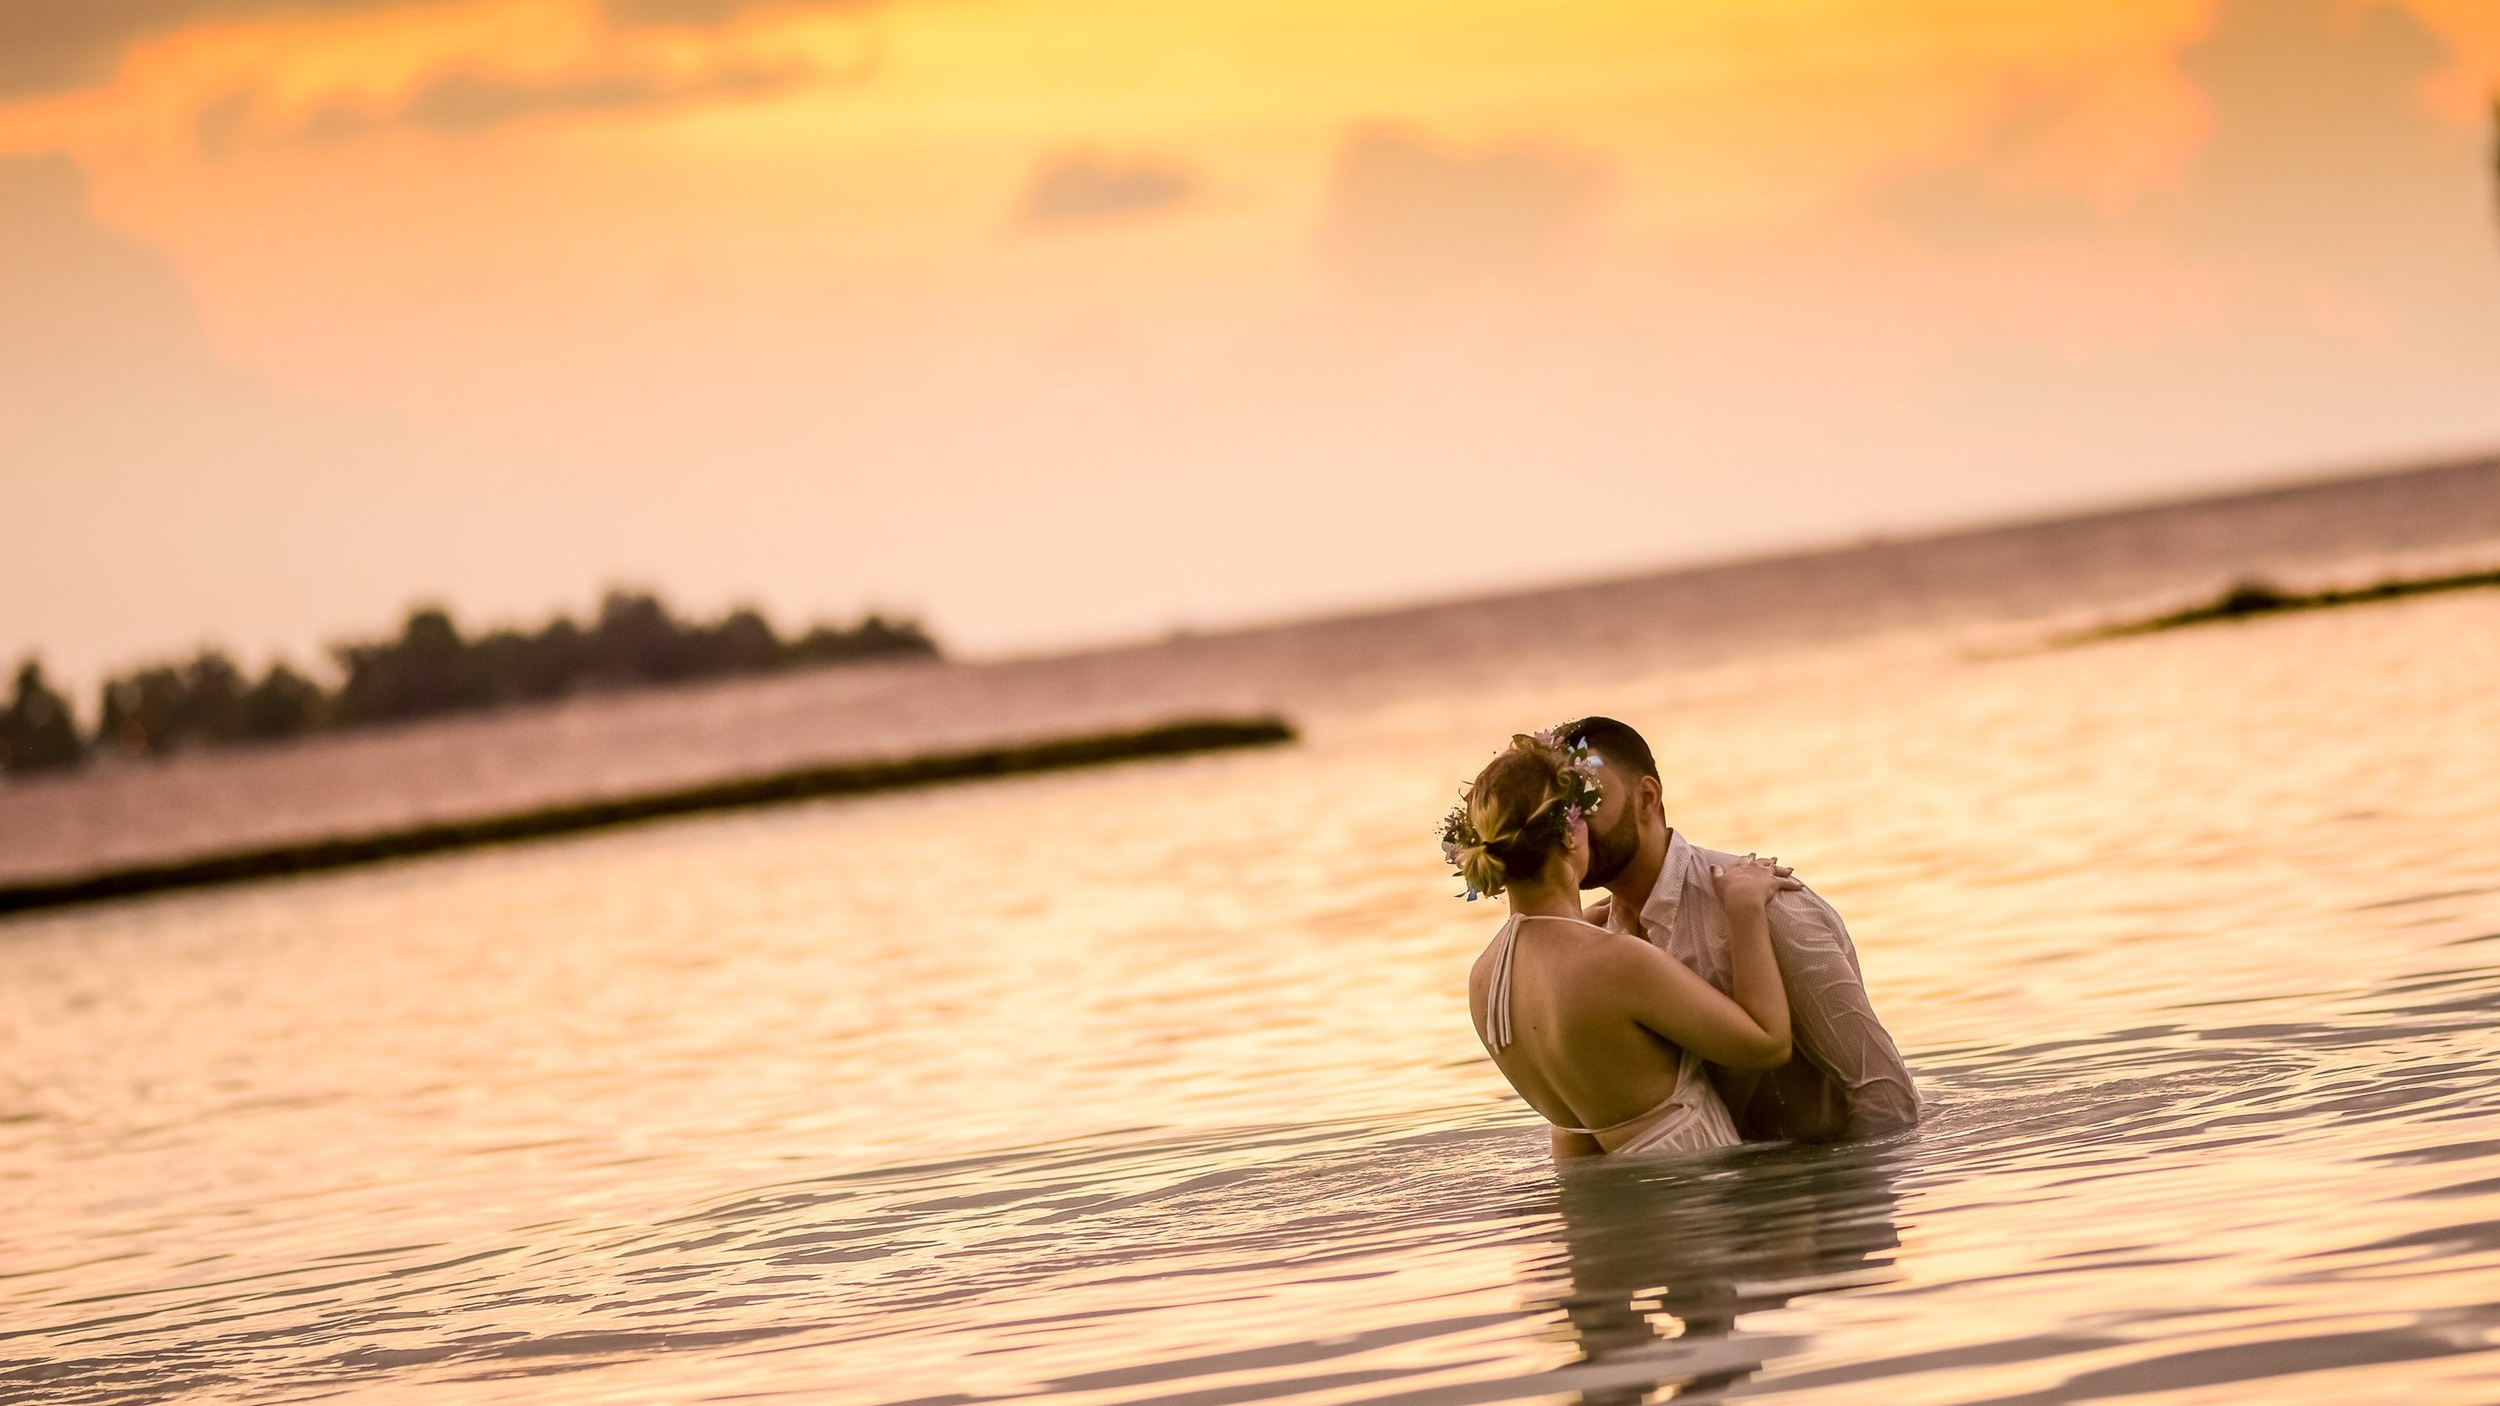 After all is said and done, your wedding photos and video are what you have to help you relive your special day.